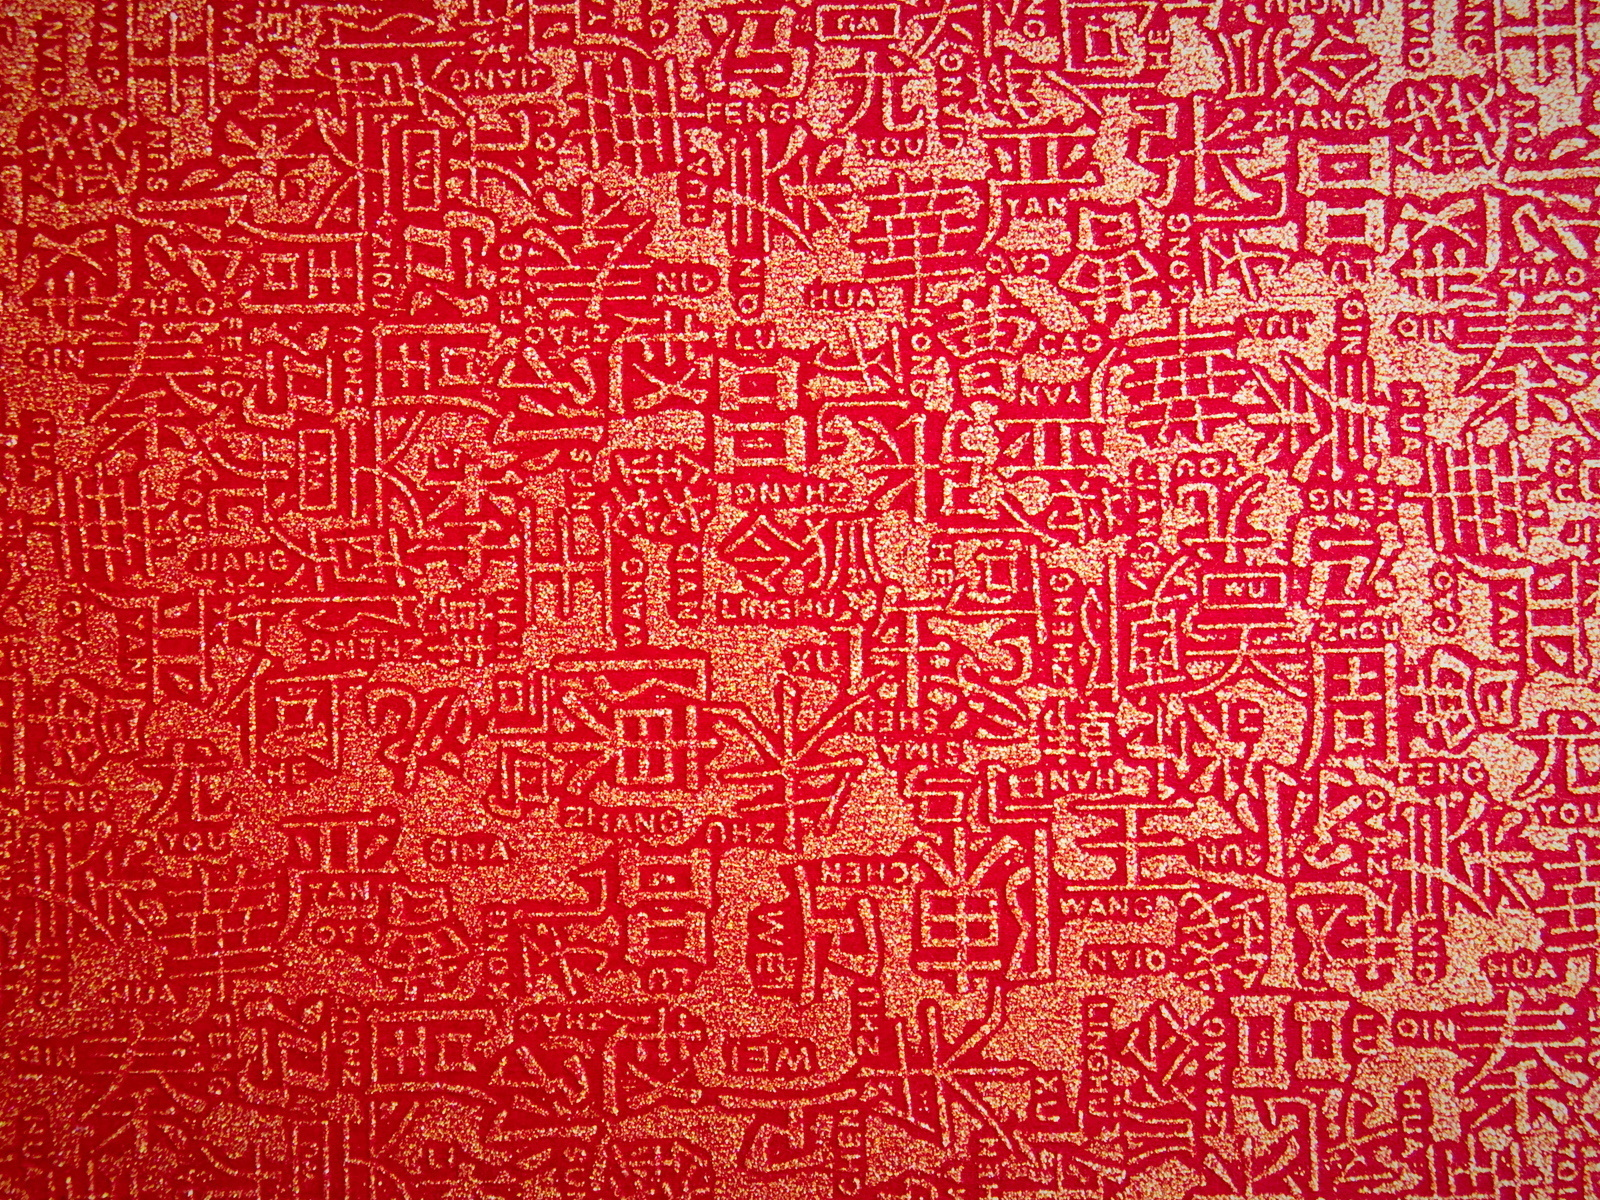 Wallpaper Chinese ieroglify red backgrounds textures widescreen 1600x1200